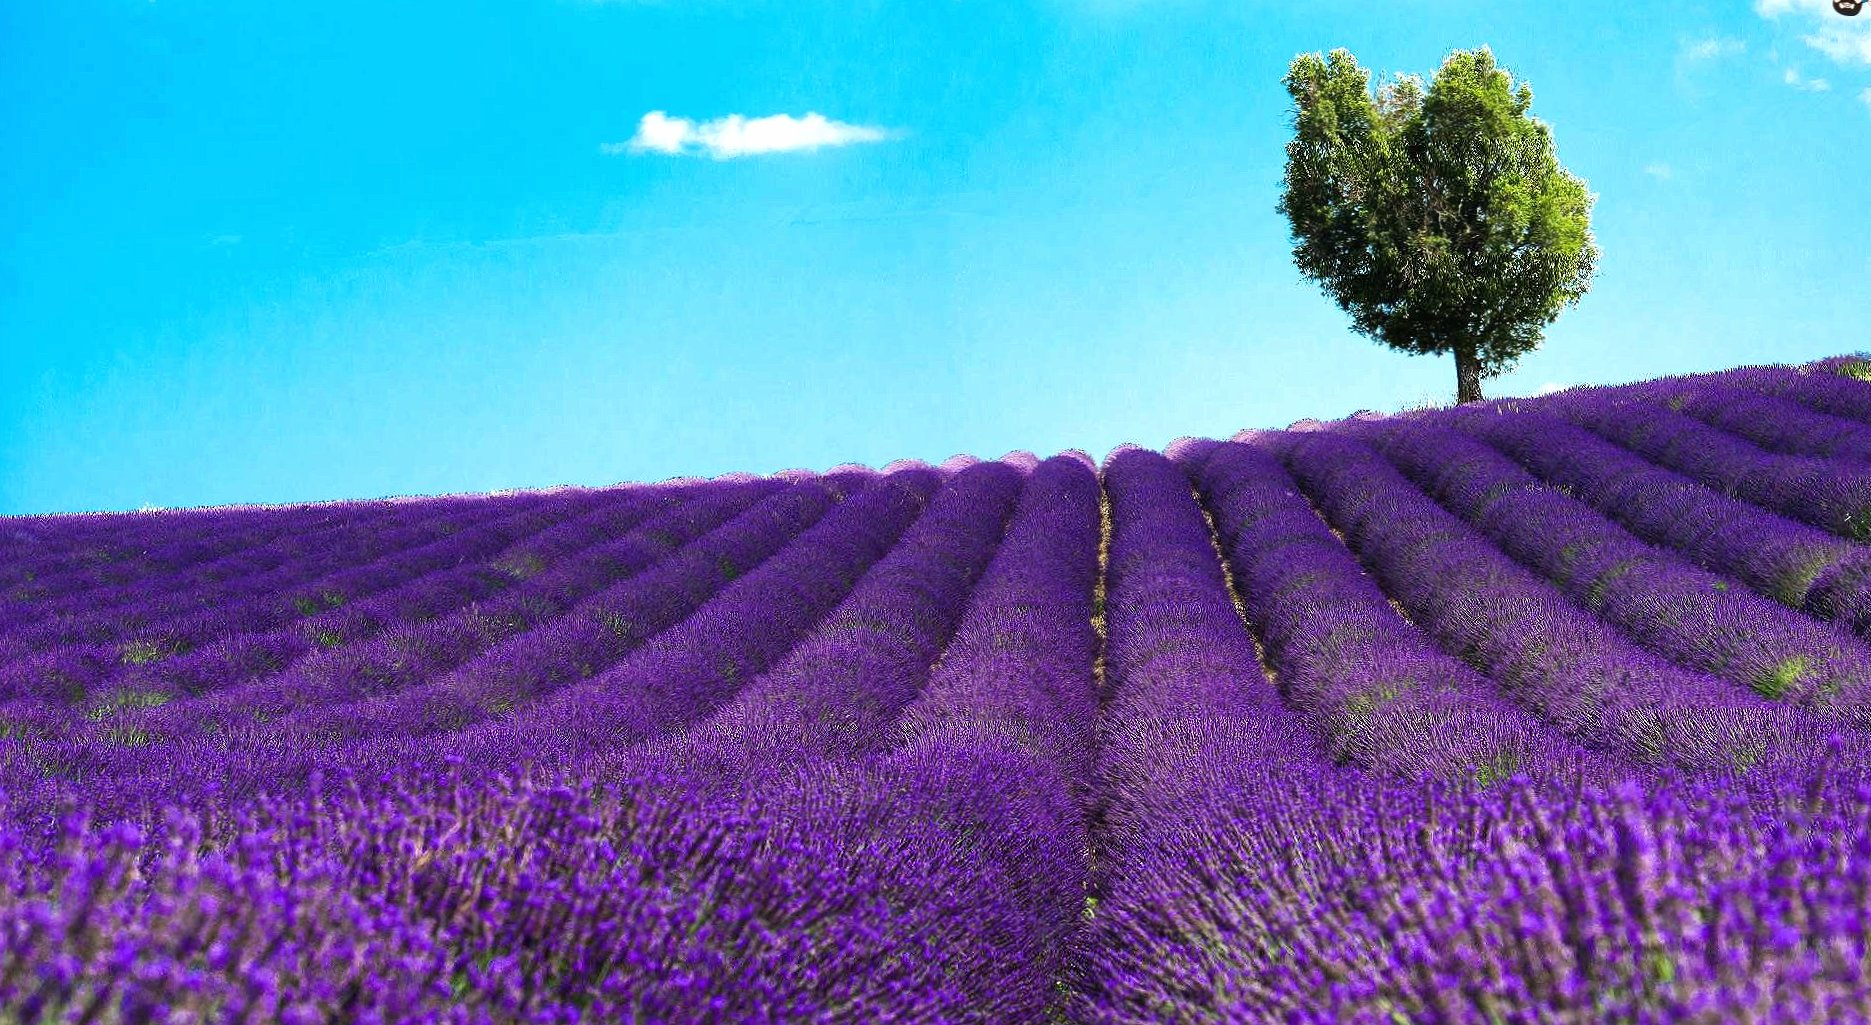 lavander field wallpapers HD quality